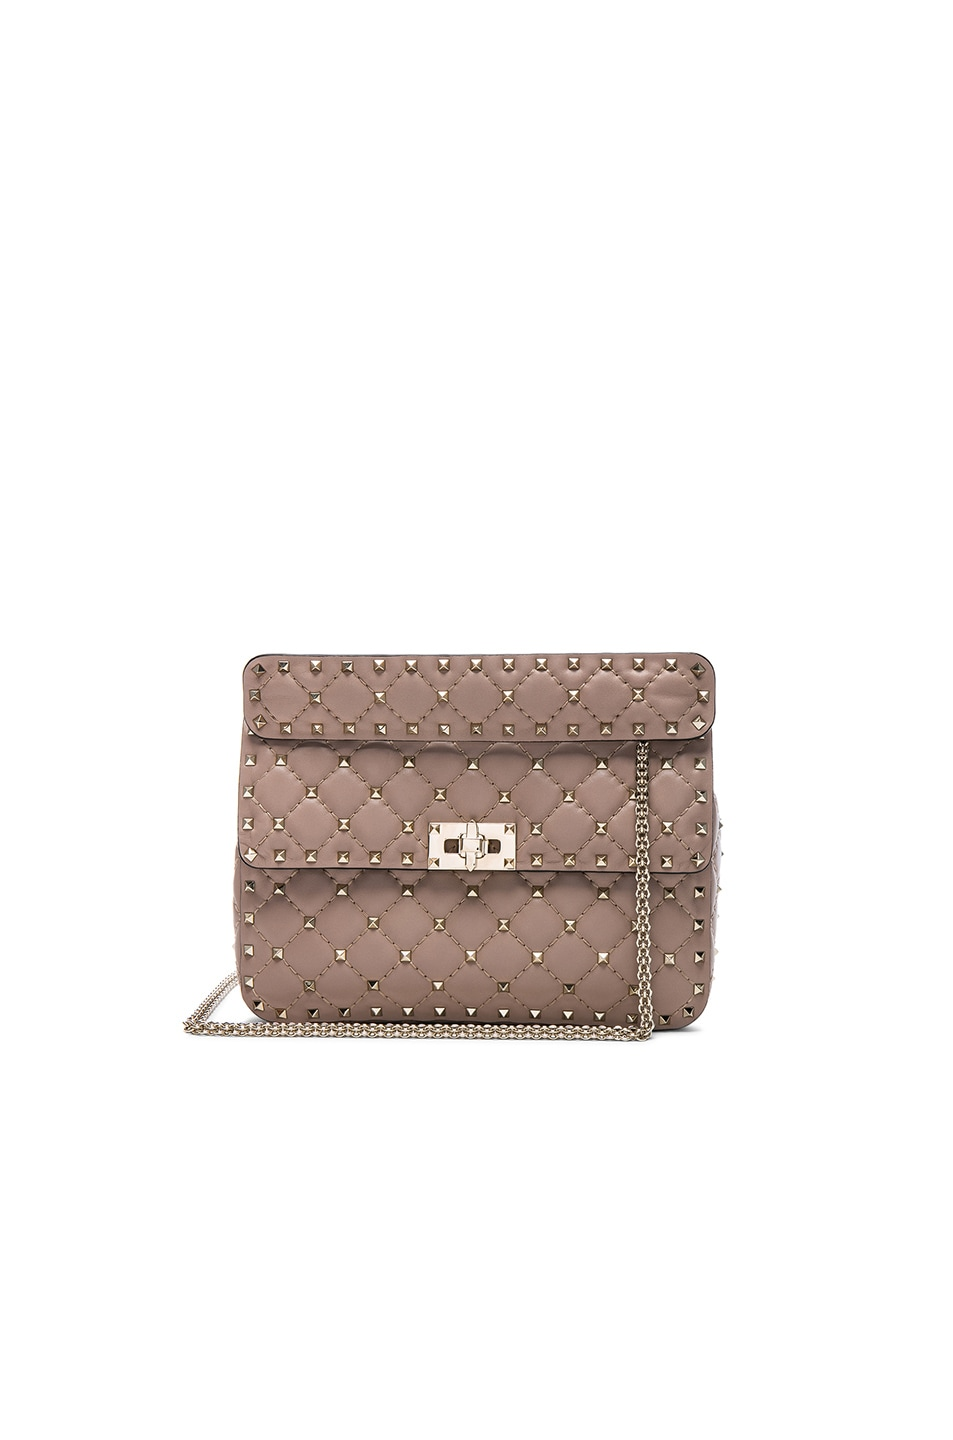 Image 1 of Valentino Quilted Rockstud Spike Medium Chain Bag in Poudre